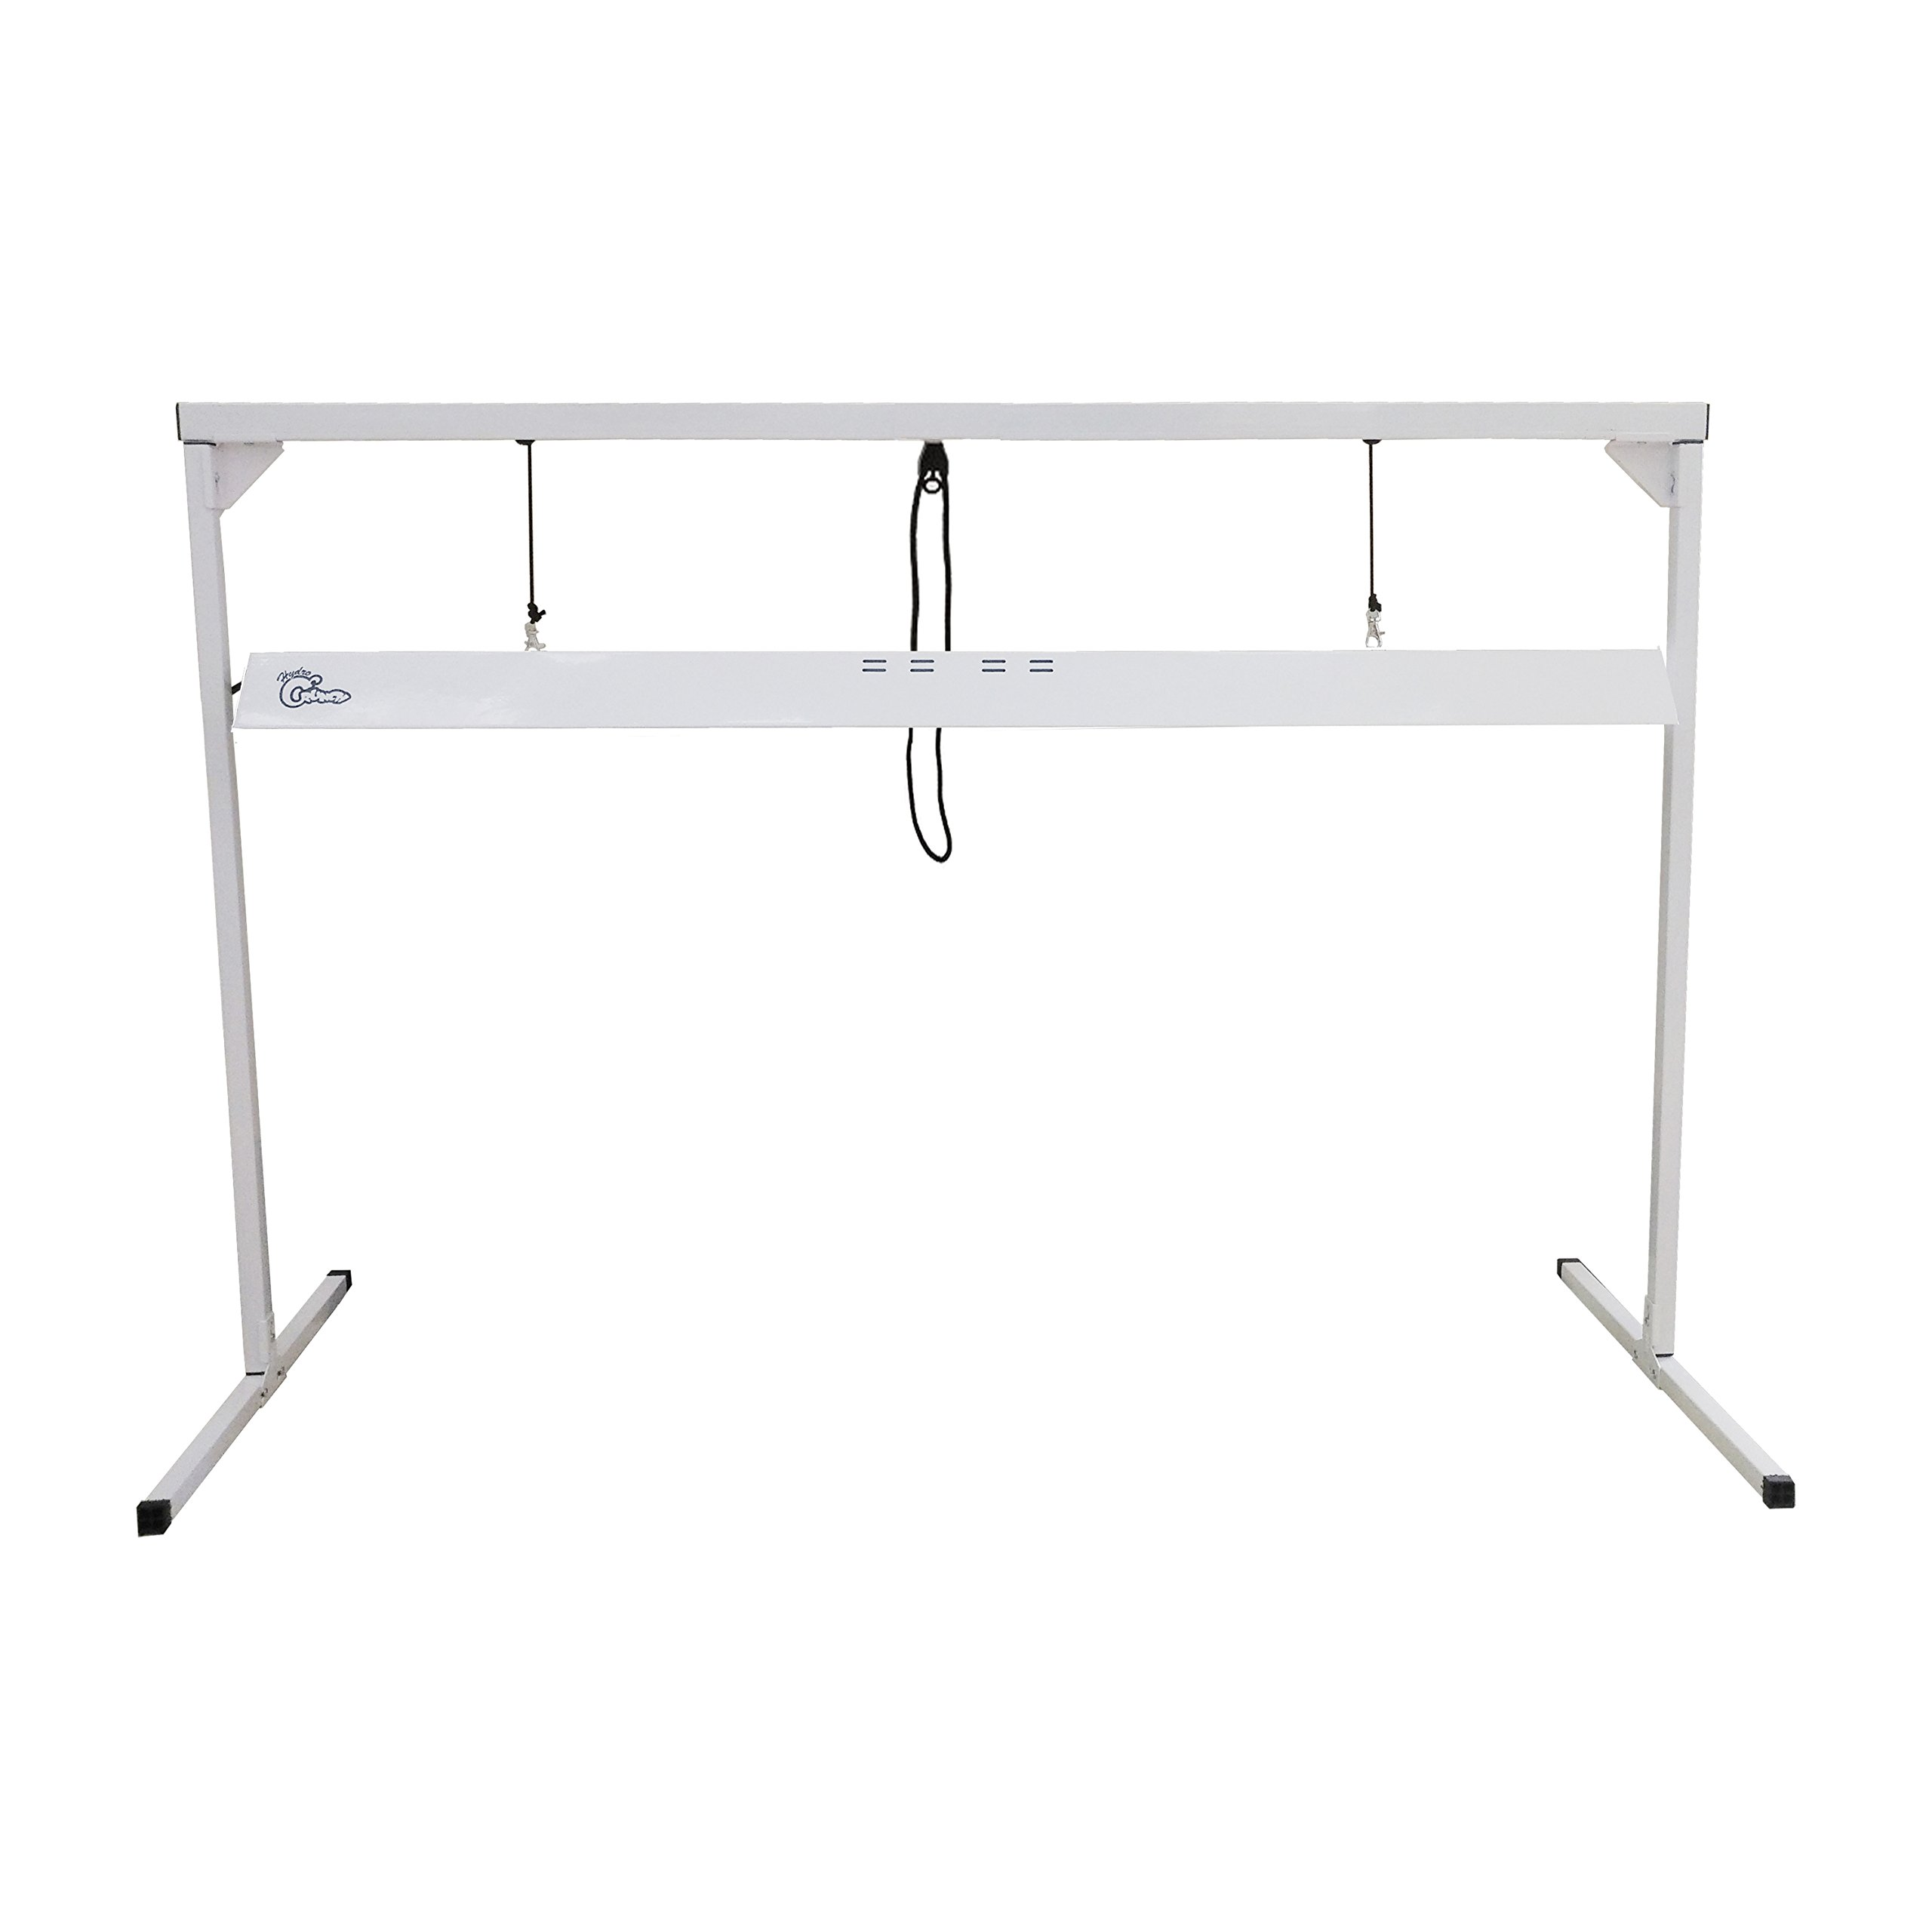 Hydro Crunch D940009300 1 54-Watt Steel White Powder Coated Light Stand 54W T5 4' Steel, T5 4ft. 1 Lamp